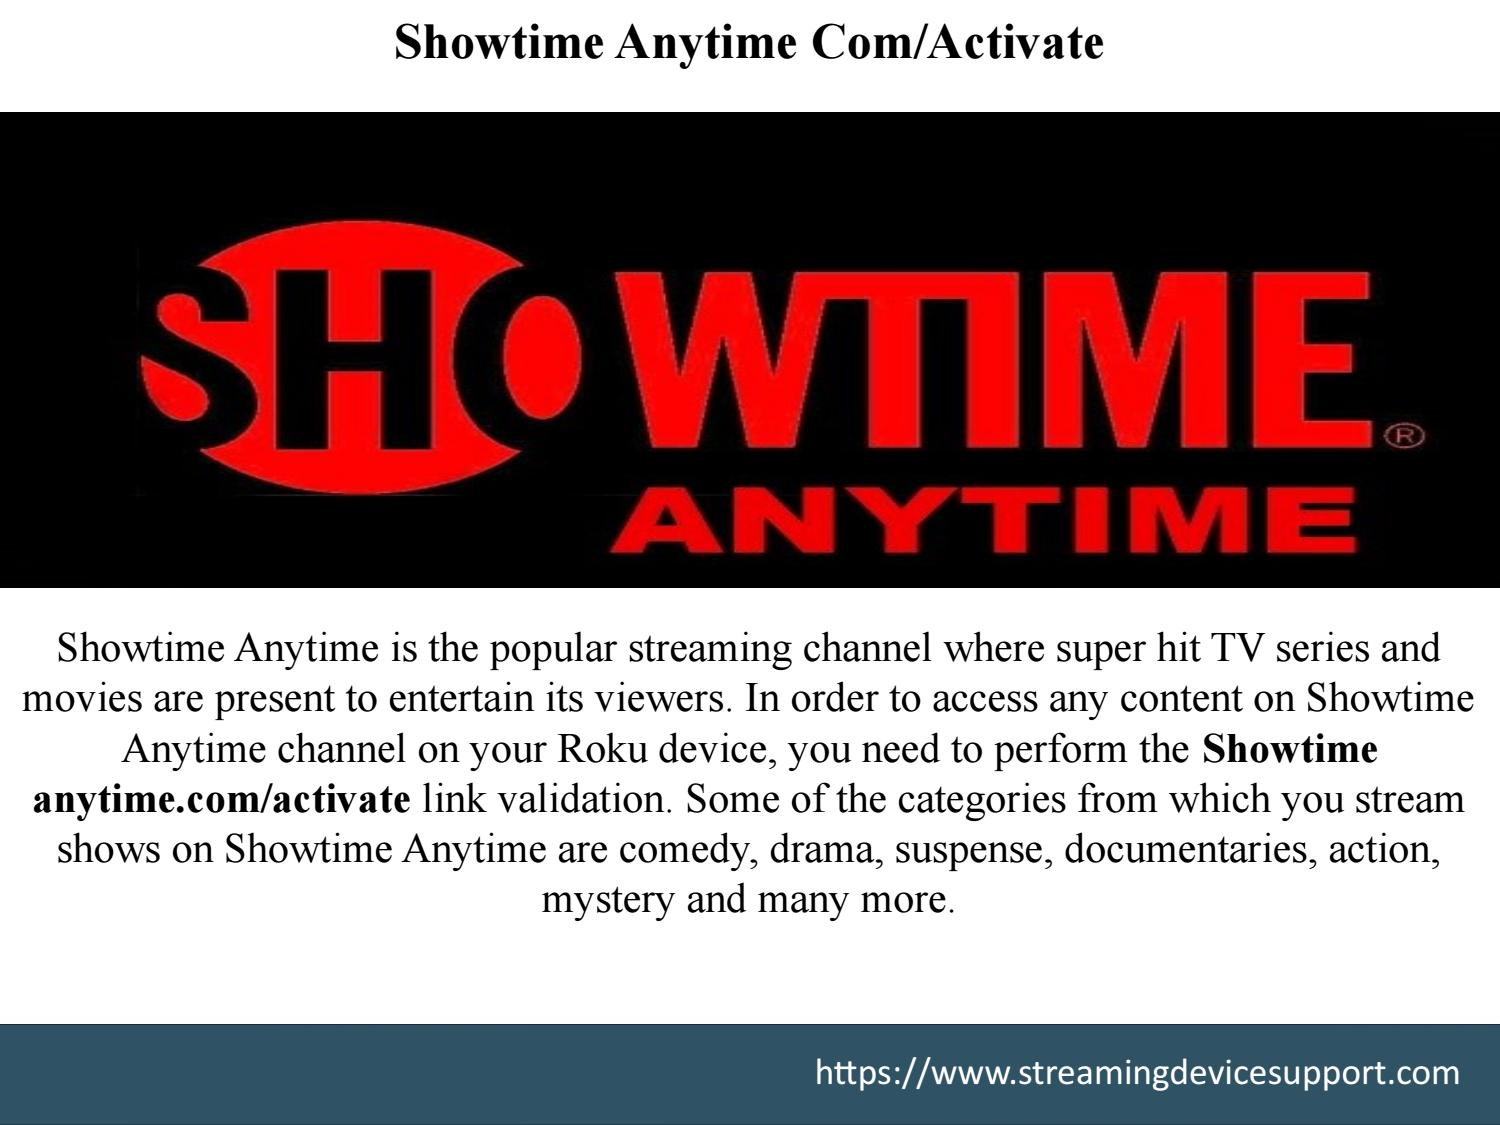 Step By Step Guide To Activate Showtime Anytime Com Activate On Your Roku Device By Rokucomlink Issuu